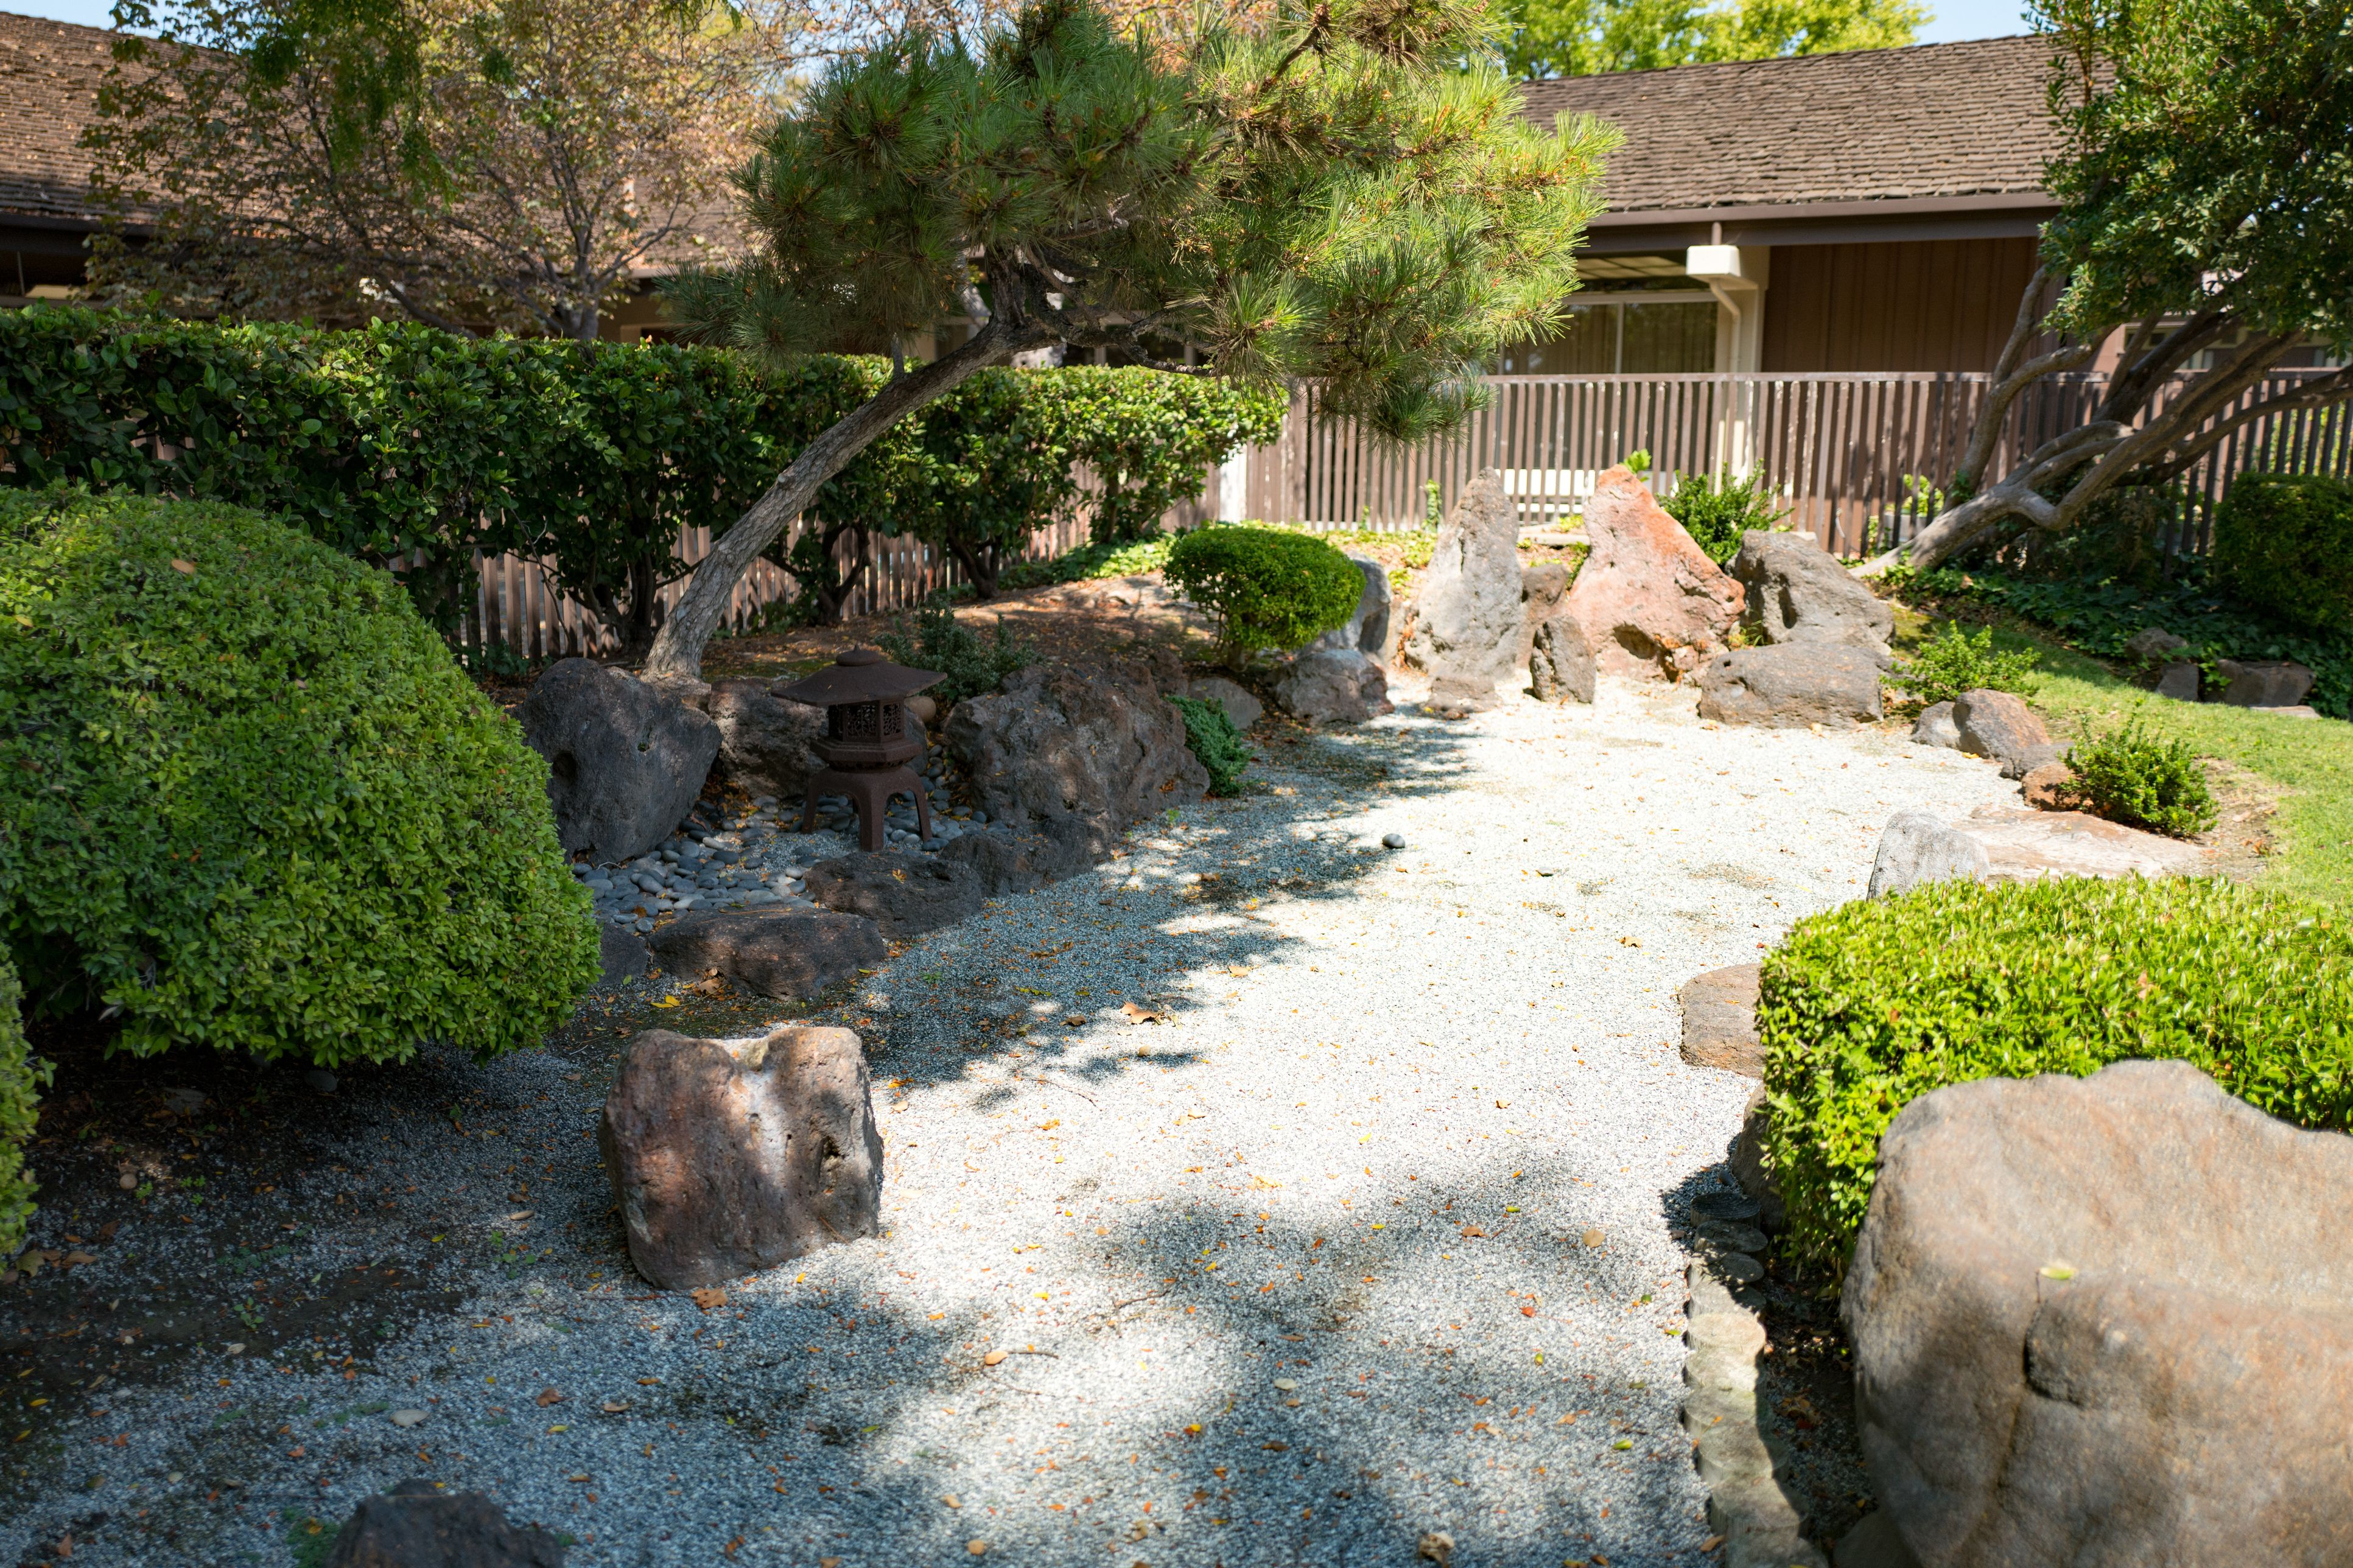 Los Angeles Japanese Garden: Botanical Gardens Open To The Public In Los Angeles